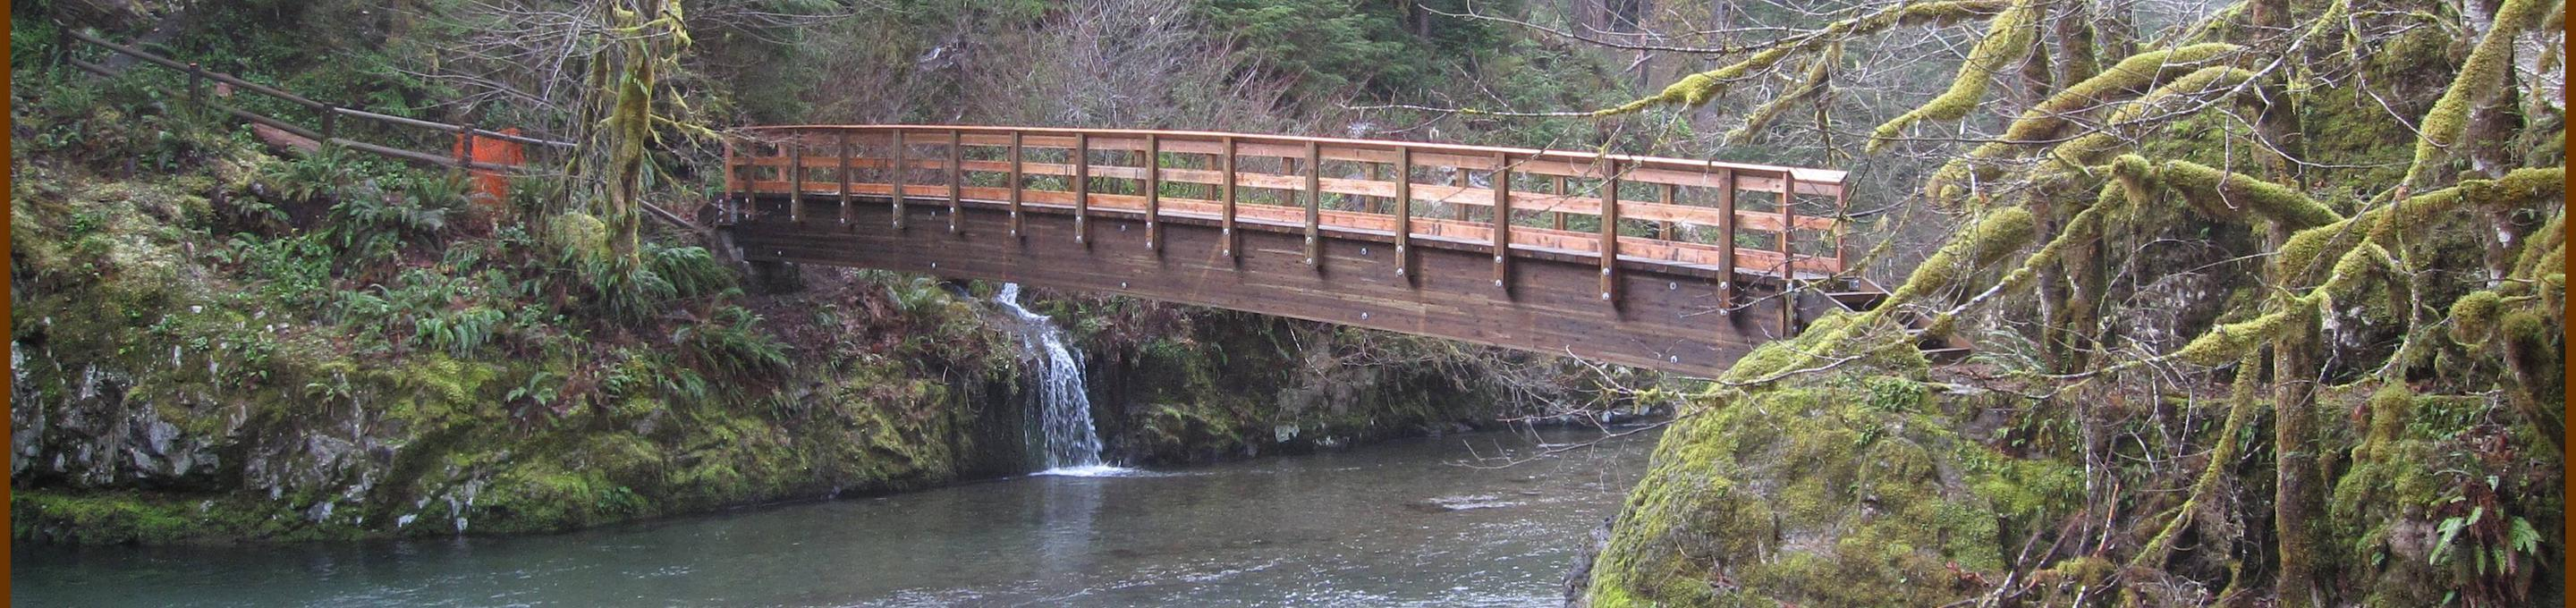 South Santiam RiverBridge from the campground to House Rock Falls.